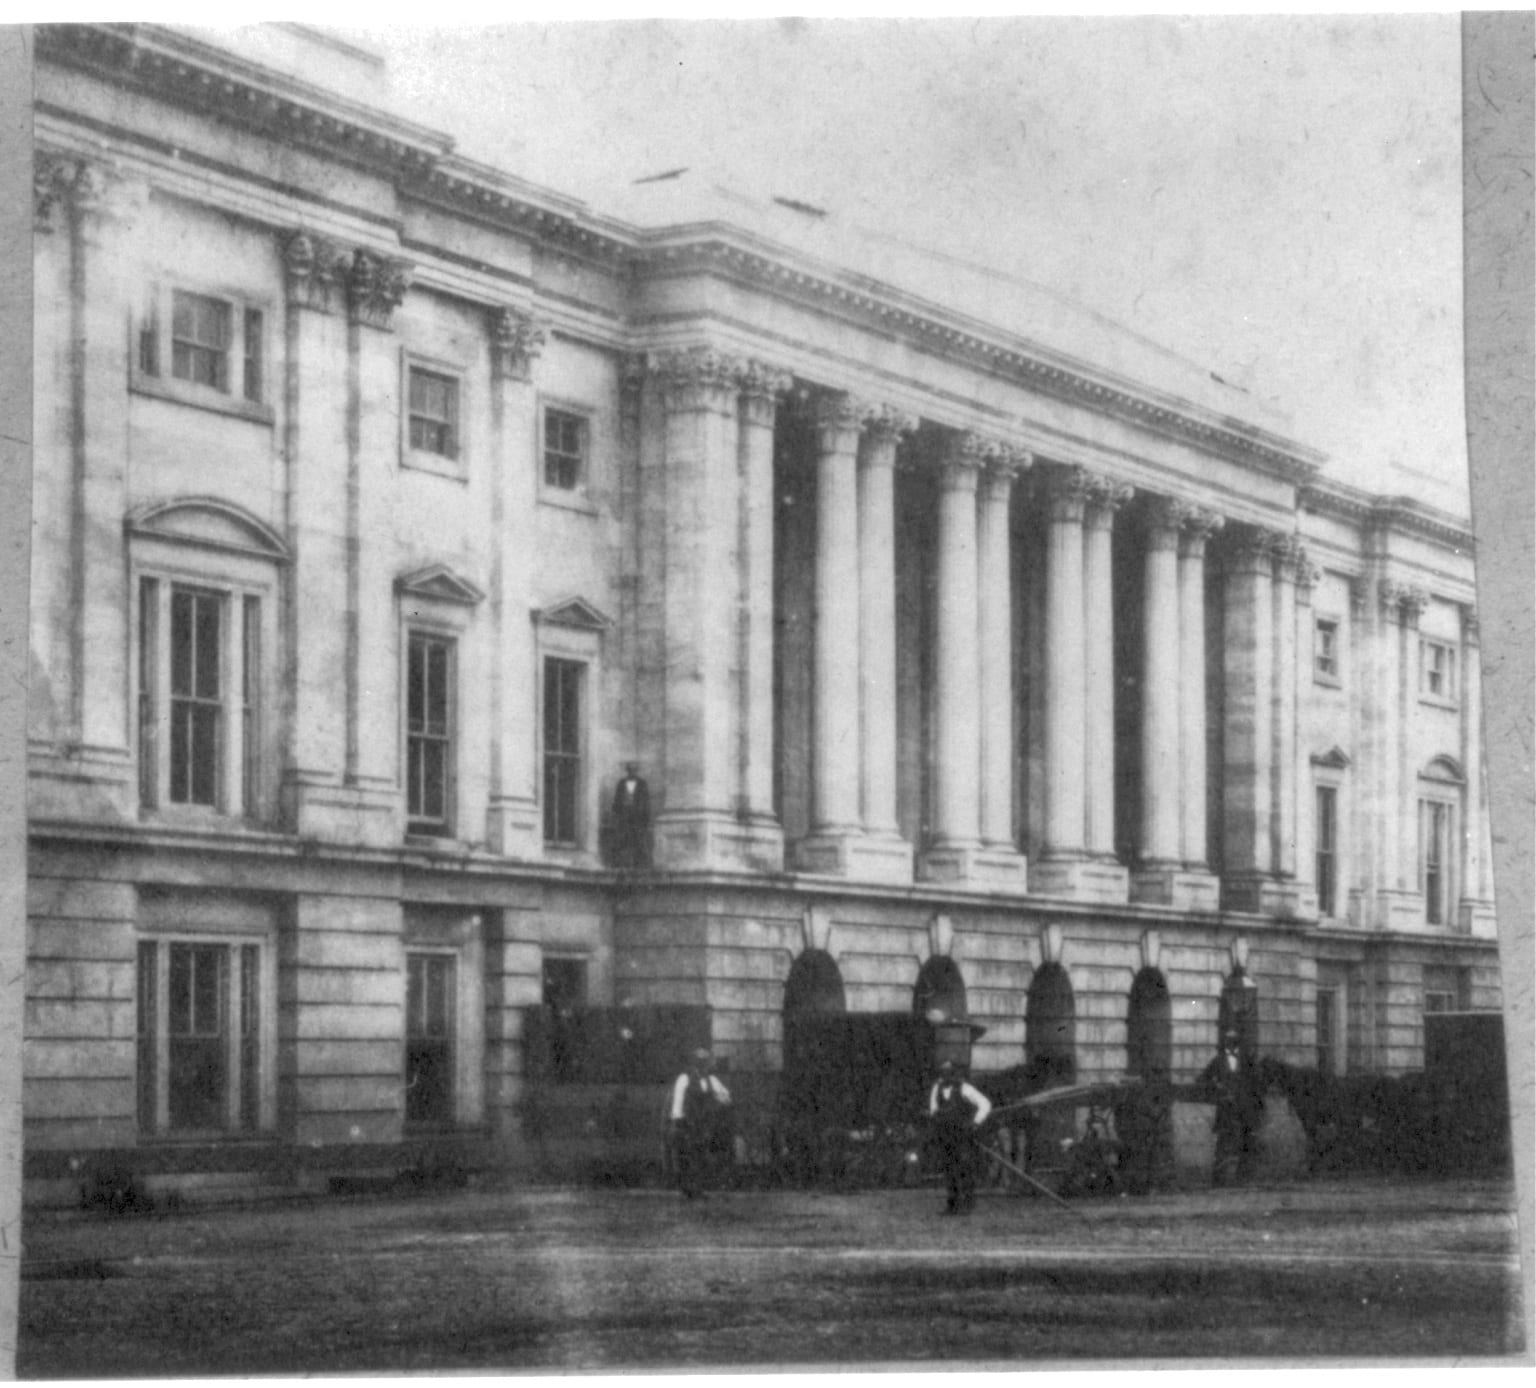 Photograph showing the General Post Office building in Washington, D.C. (1860-1878)